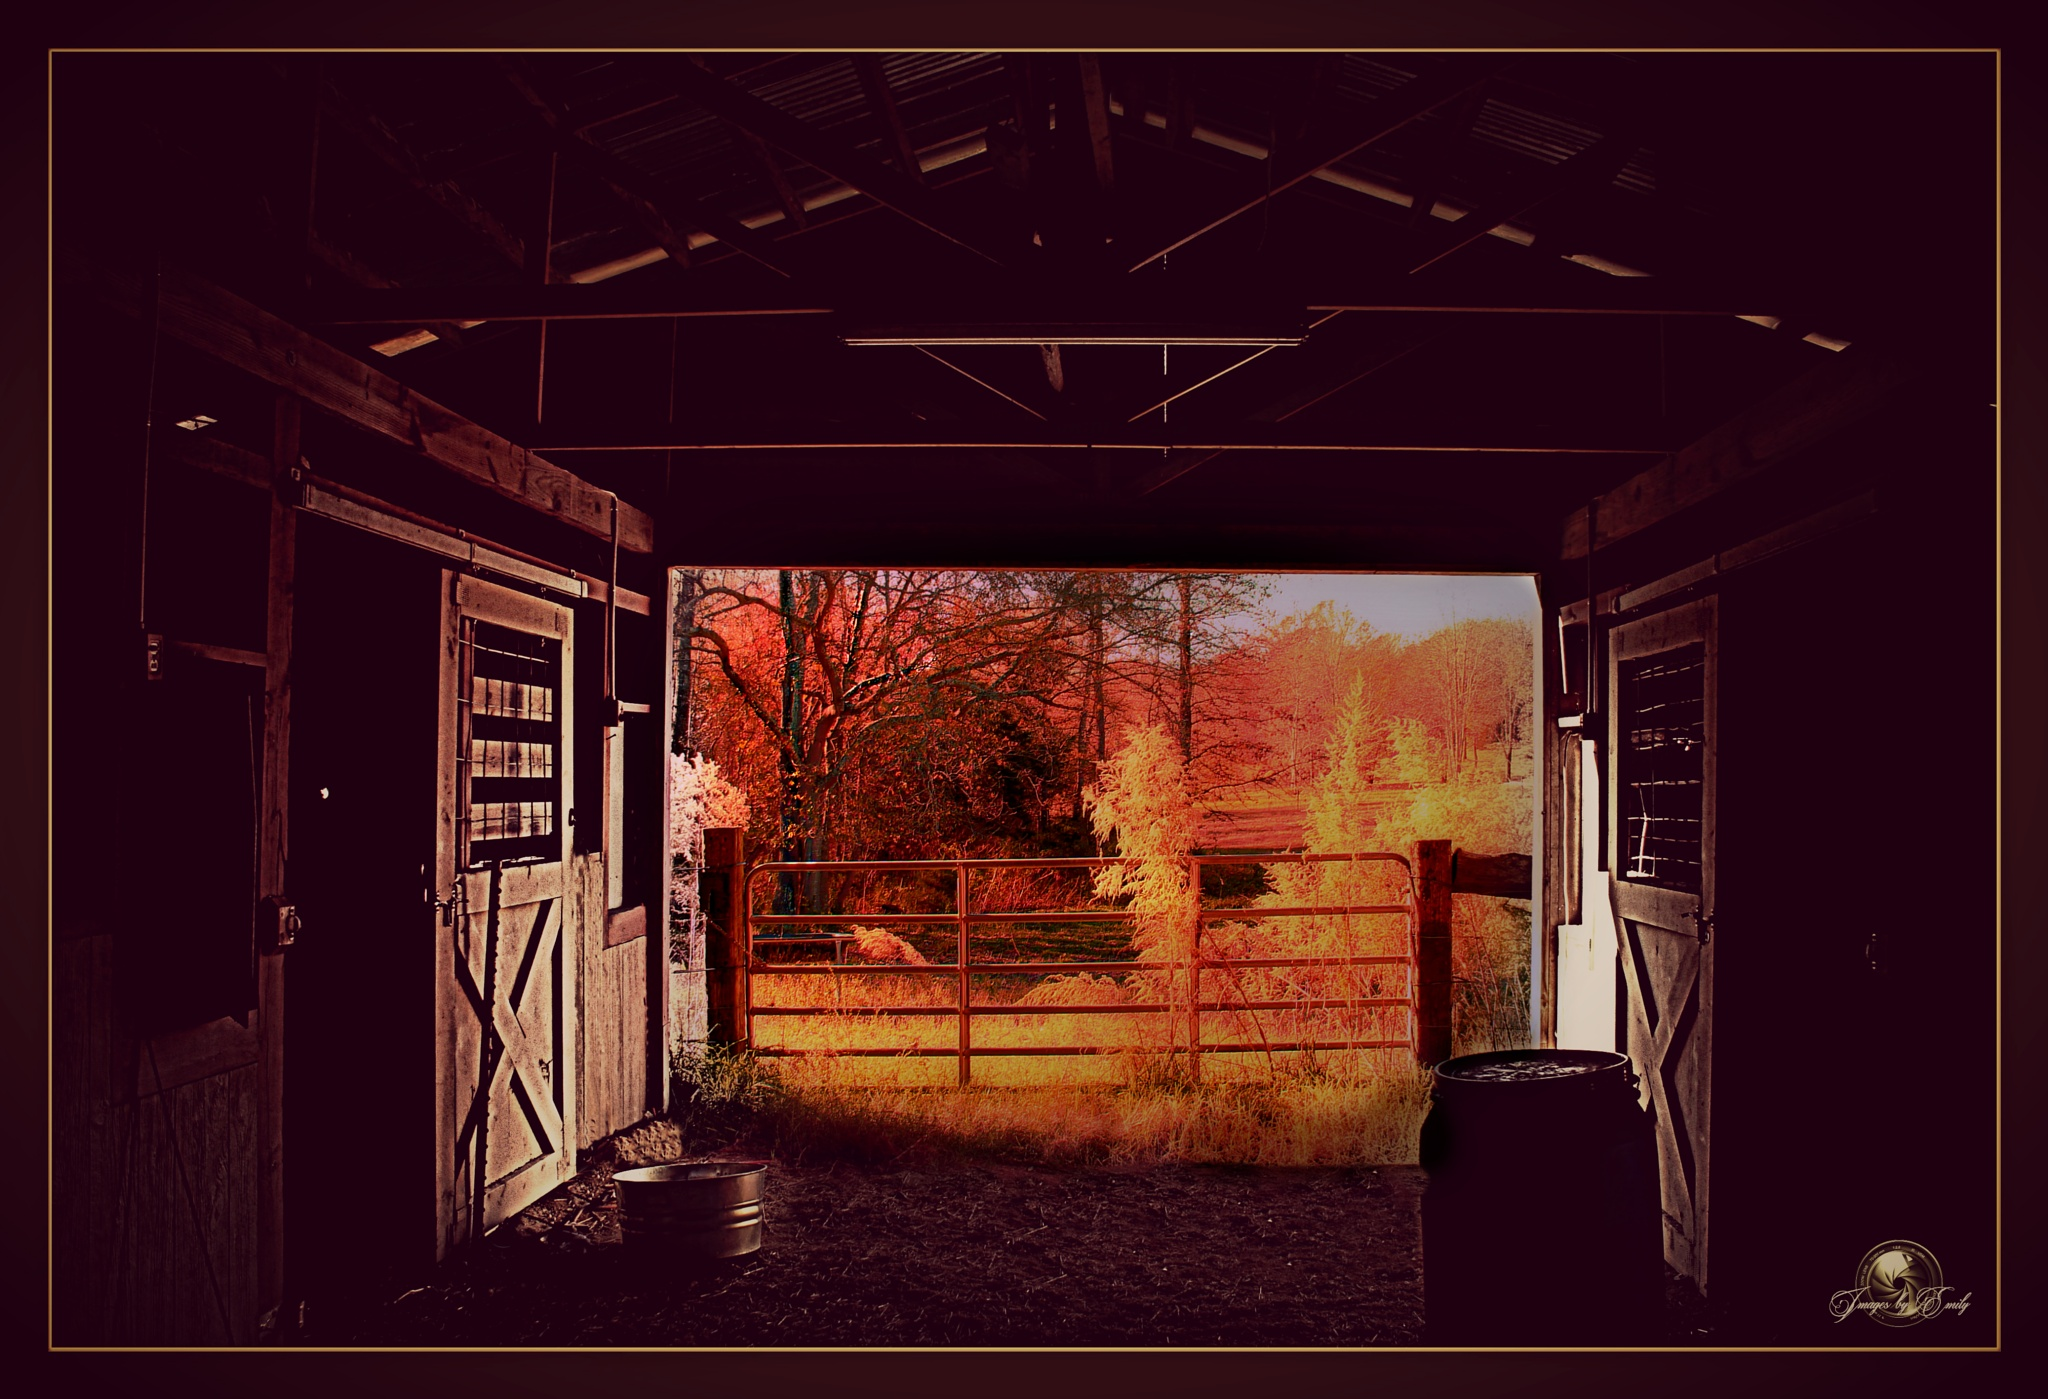 A picturesque view from the stables by Emily Grant